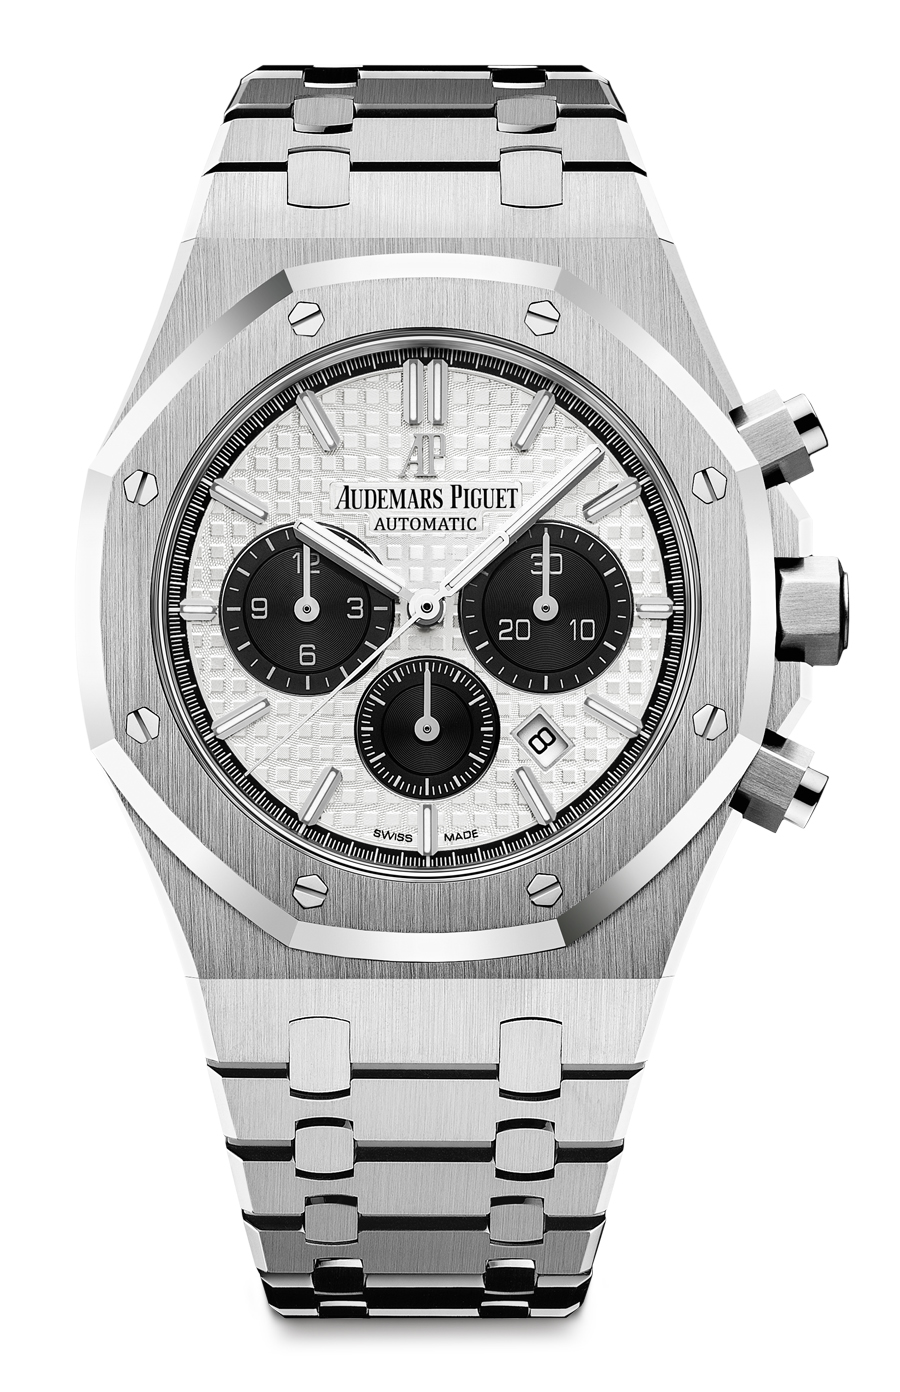 Die 2017er-Version des Royal Oak Chronographen von Audemars Piguet